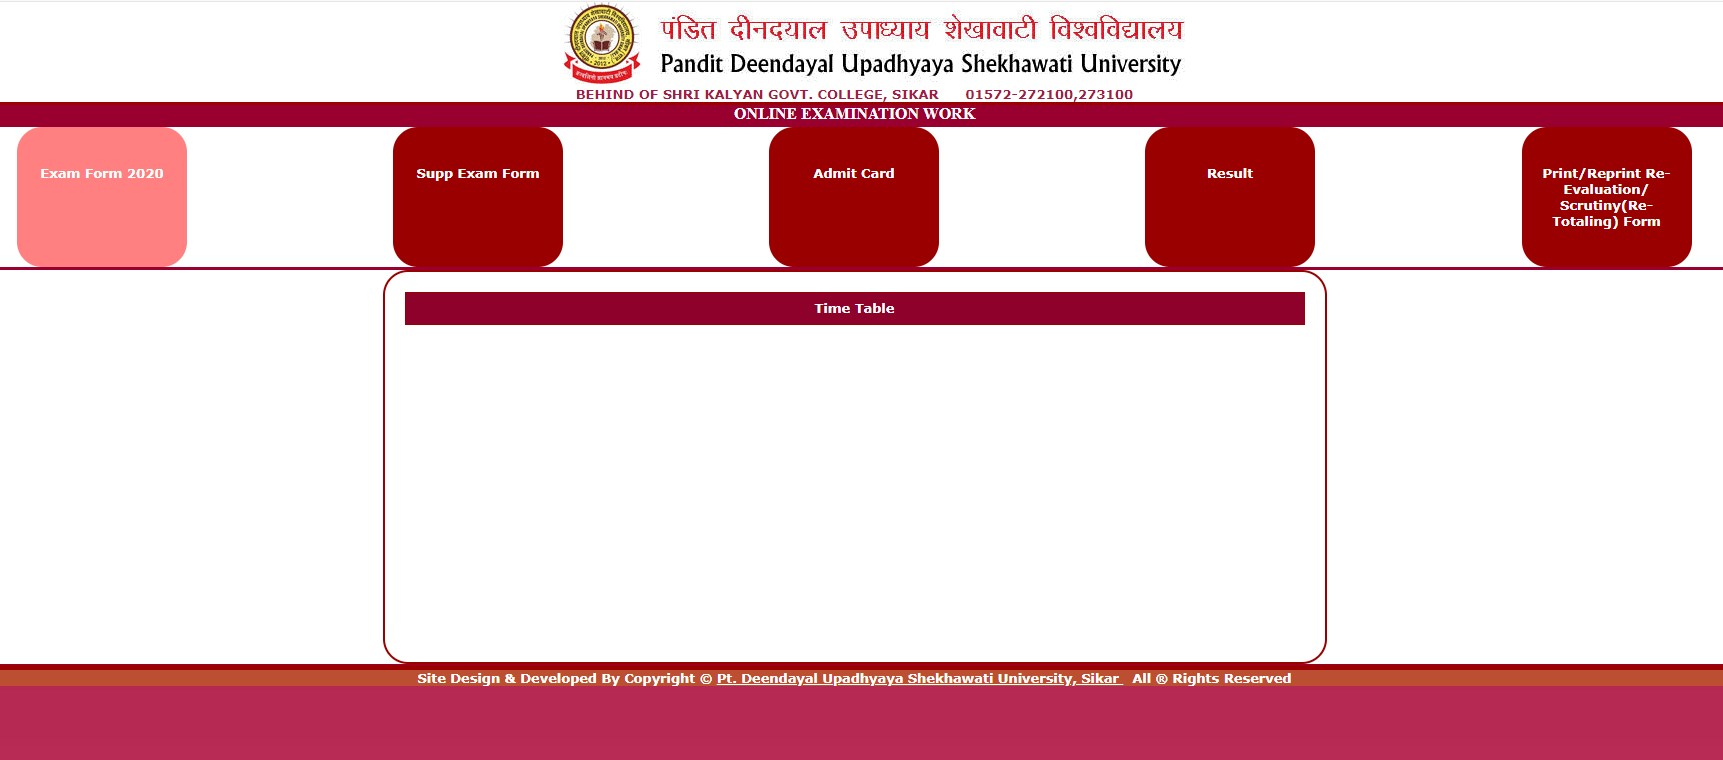 How to Download PDUSU Sikar New exam time table 2020